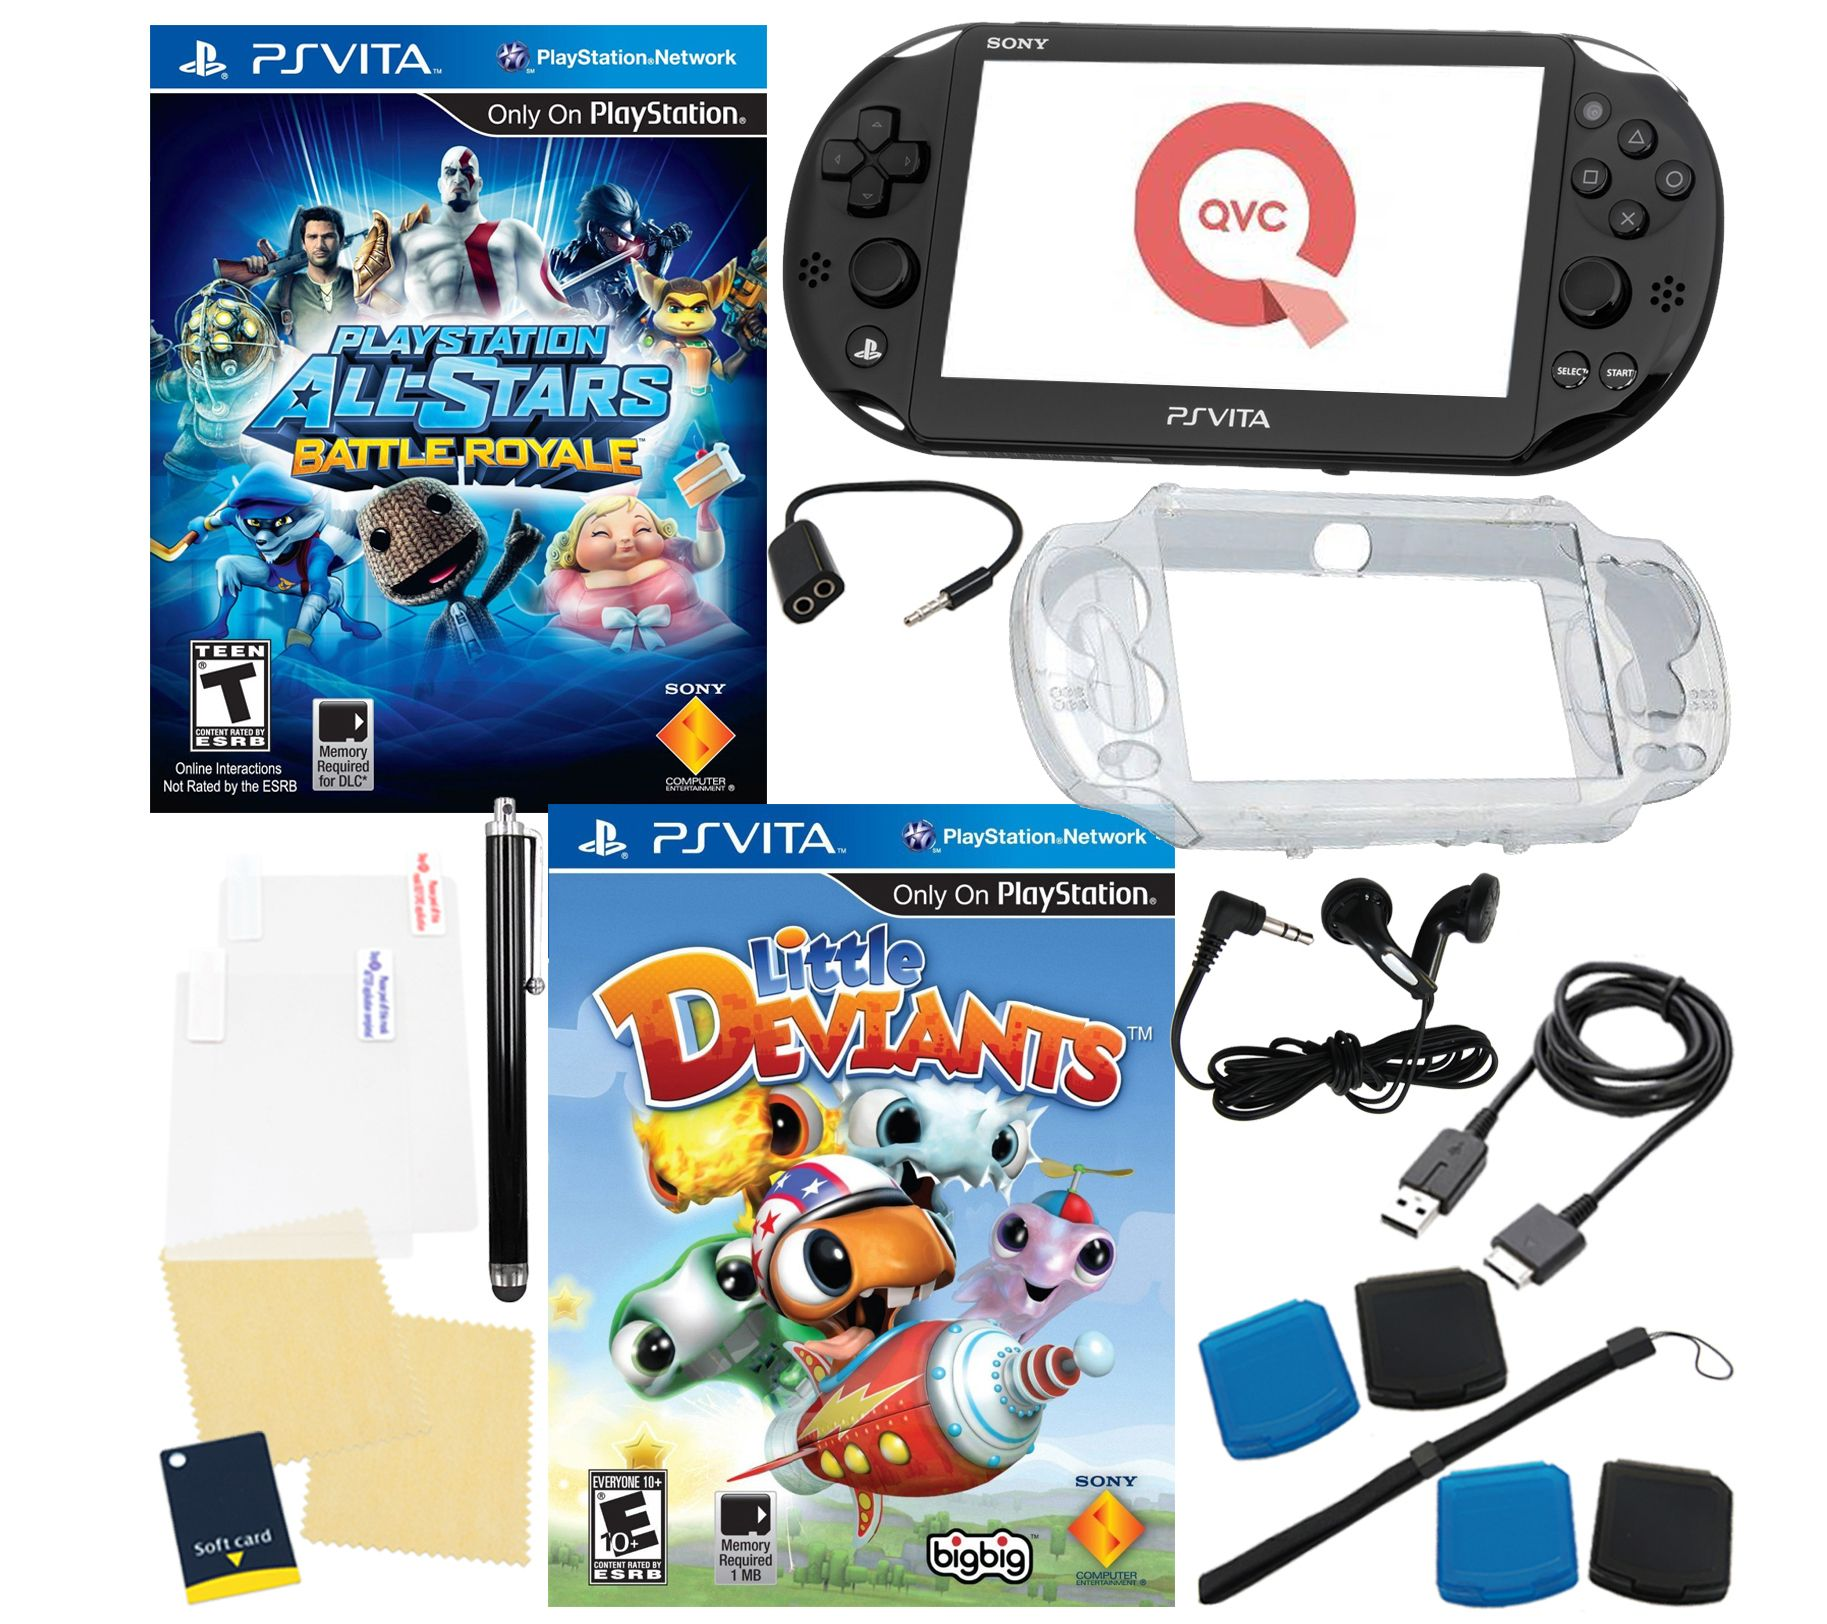 Sony Ps Vita Games : Sony ps vita bundle with games accessories — qvc